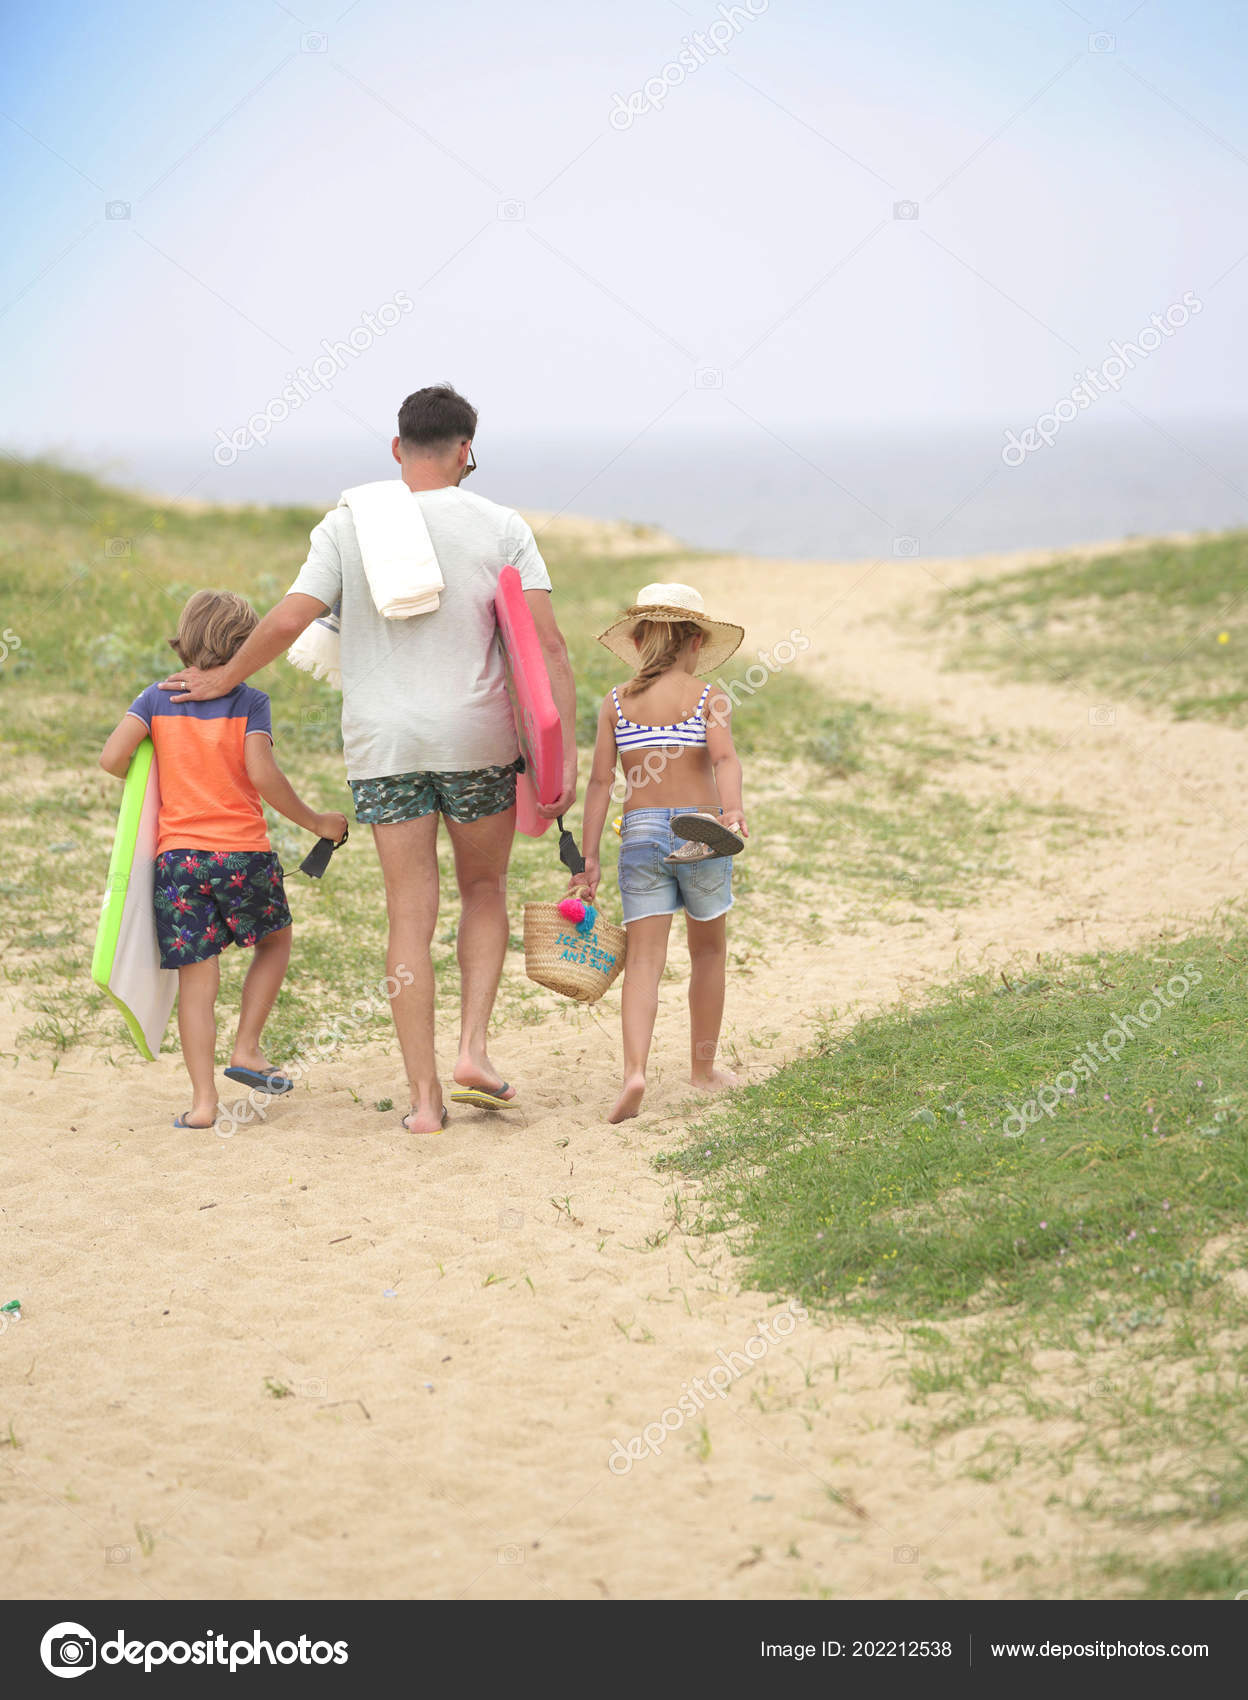 family walking beach sand dune path fotografias de stock goodluz